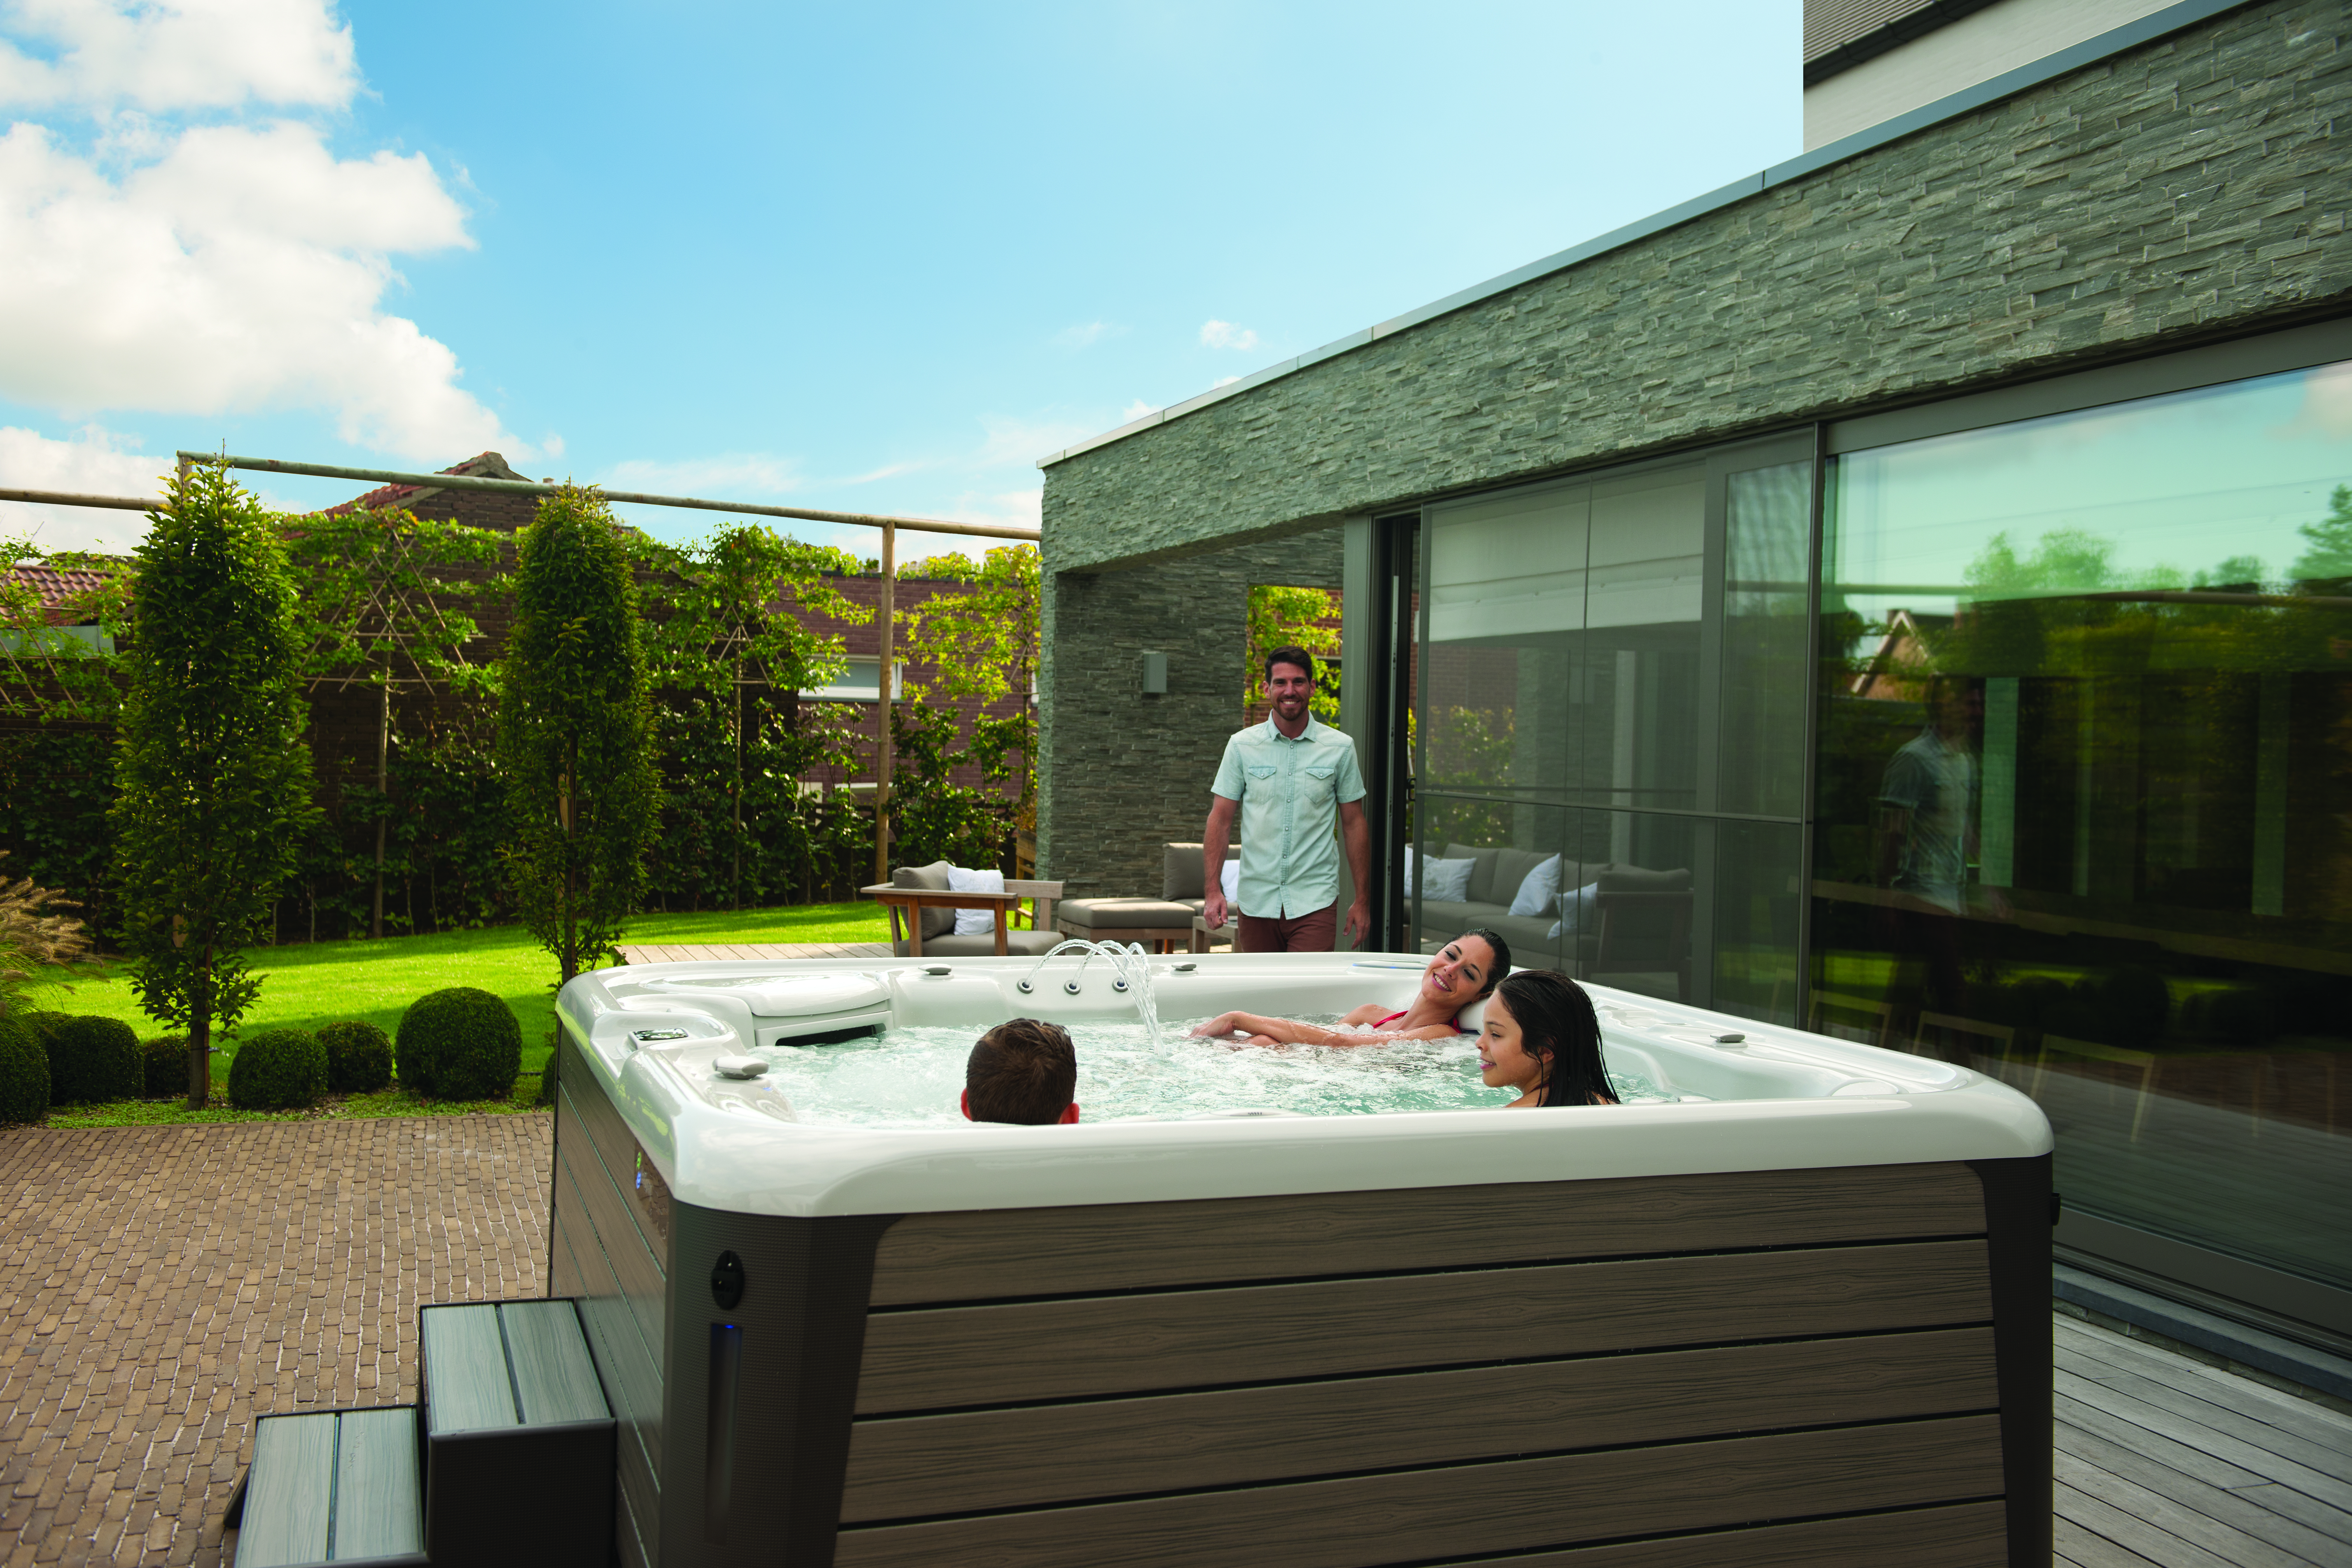 6 Best Arguments for Getting That Hot Tub